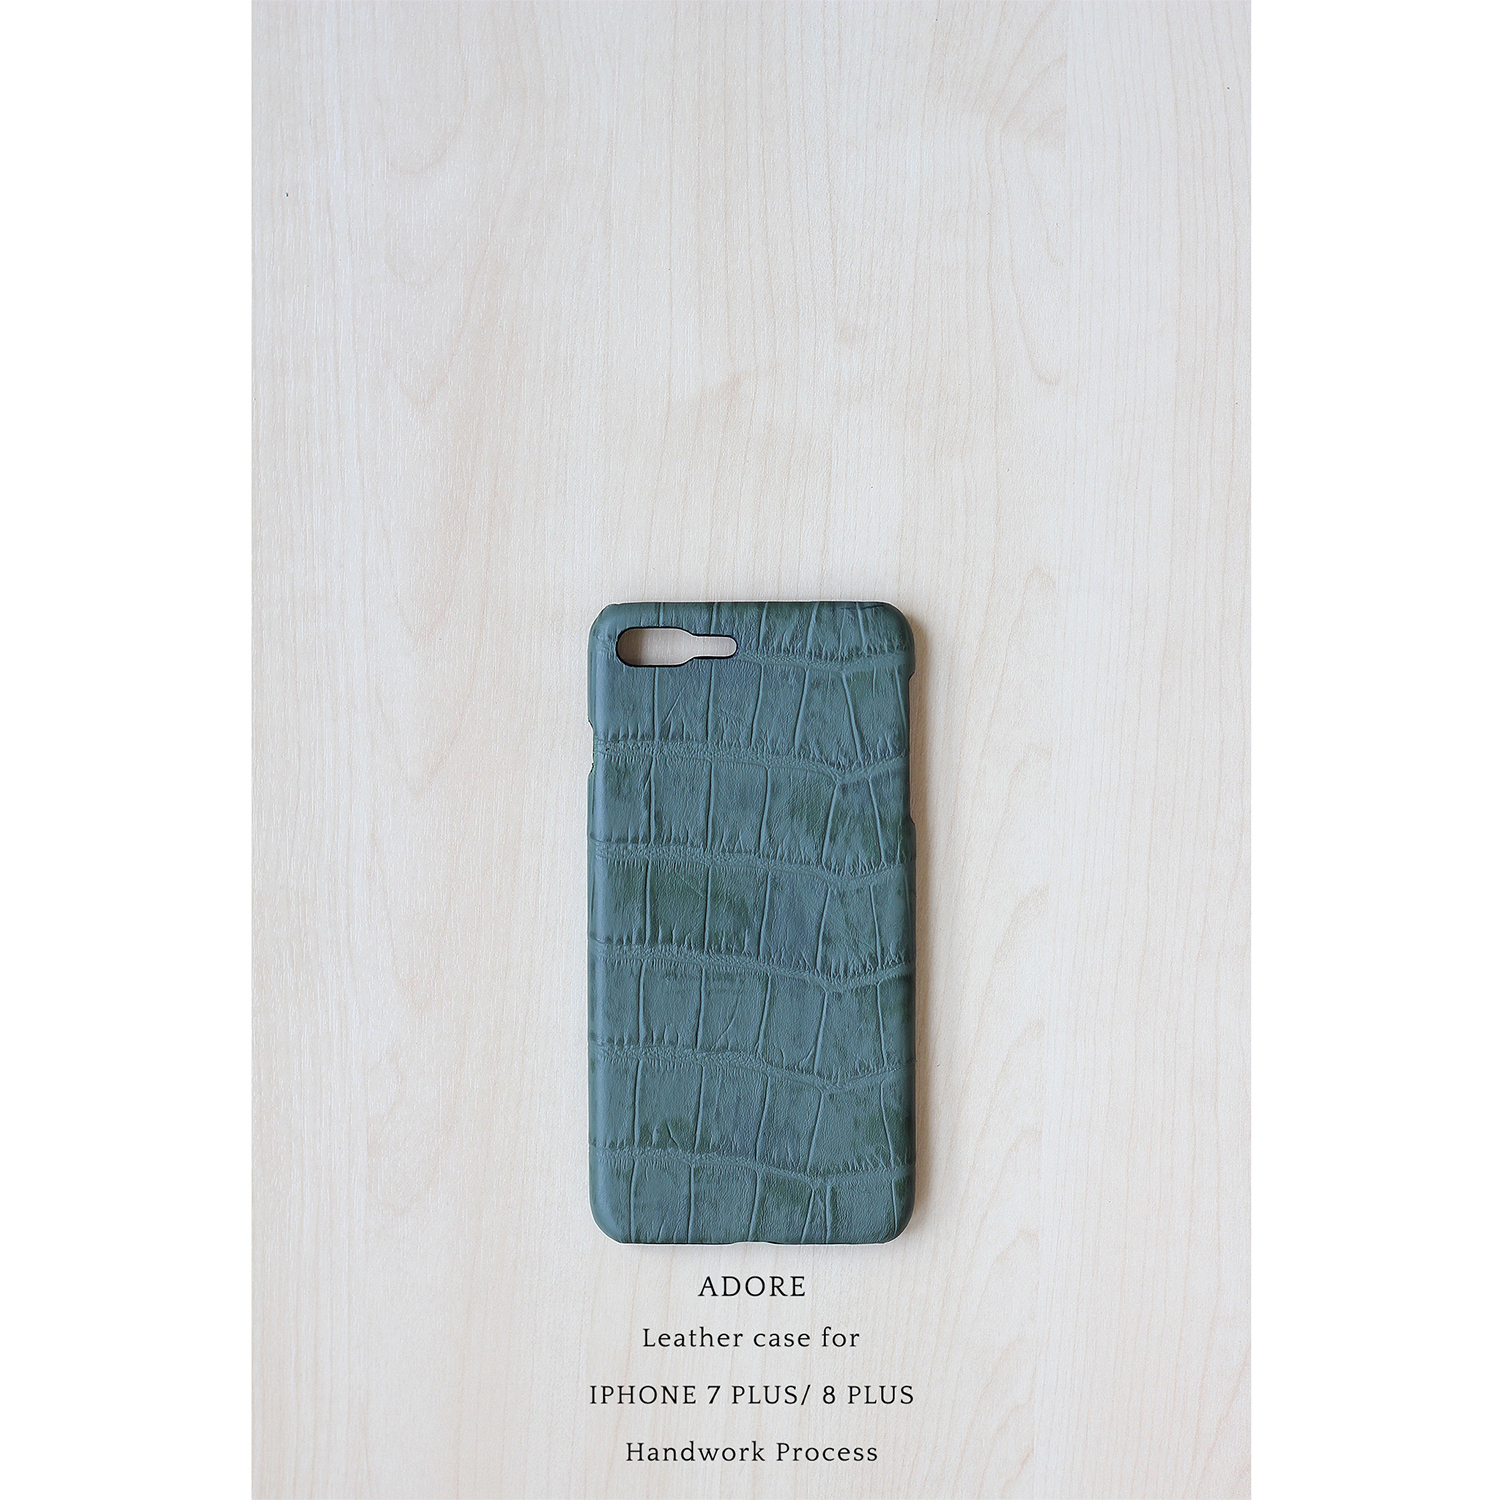 Leather case for Iphone 7 PLUS / 8PLUS (Forest Green)